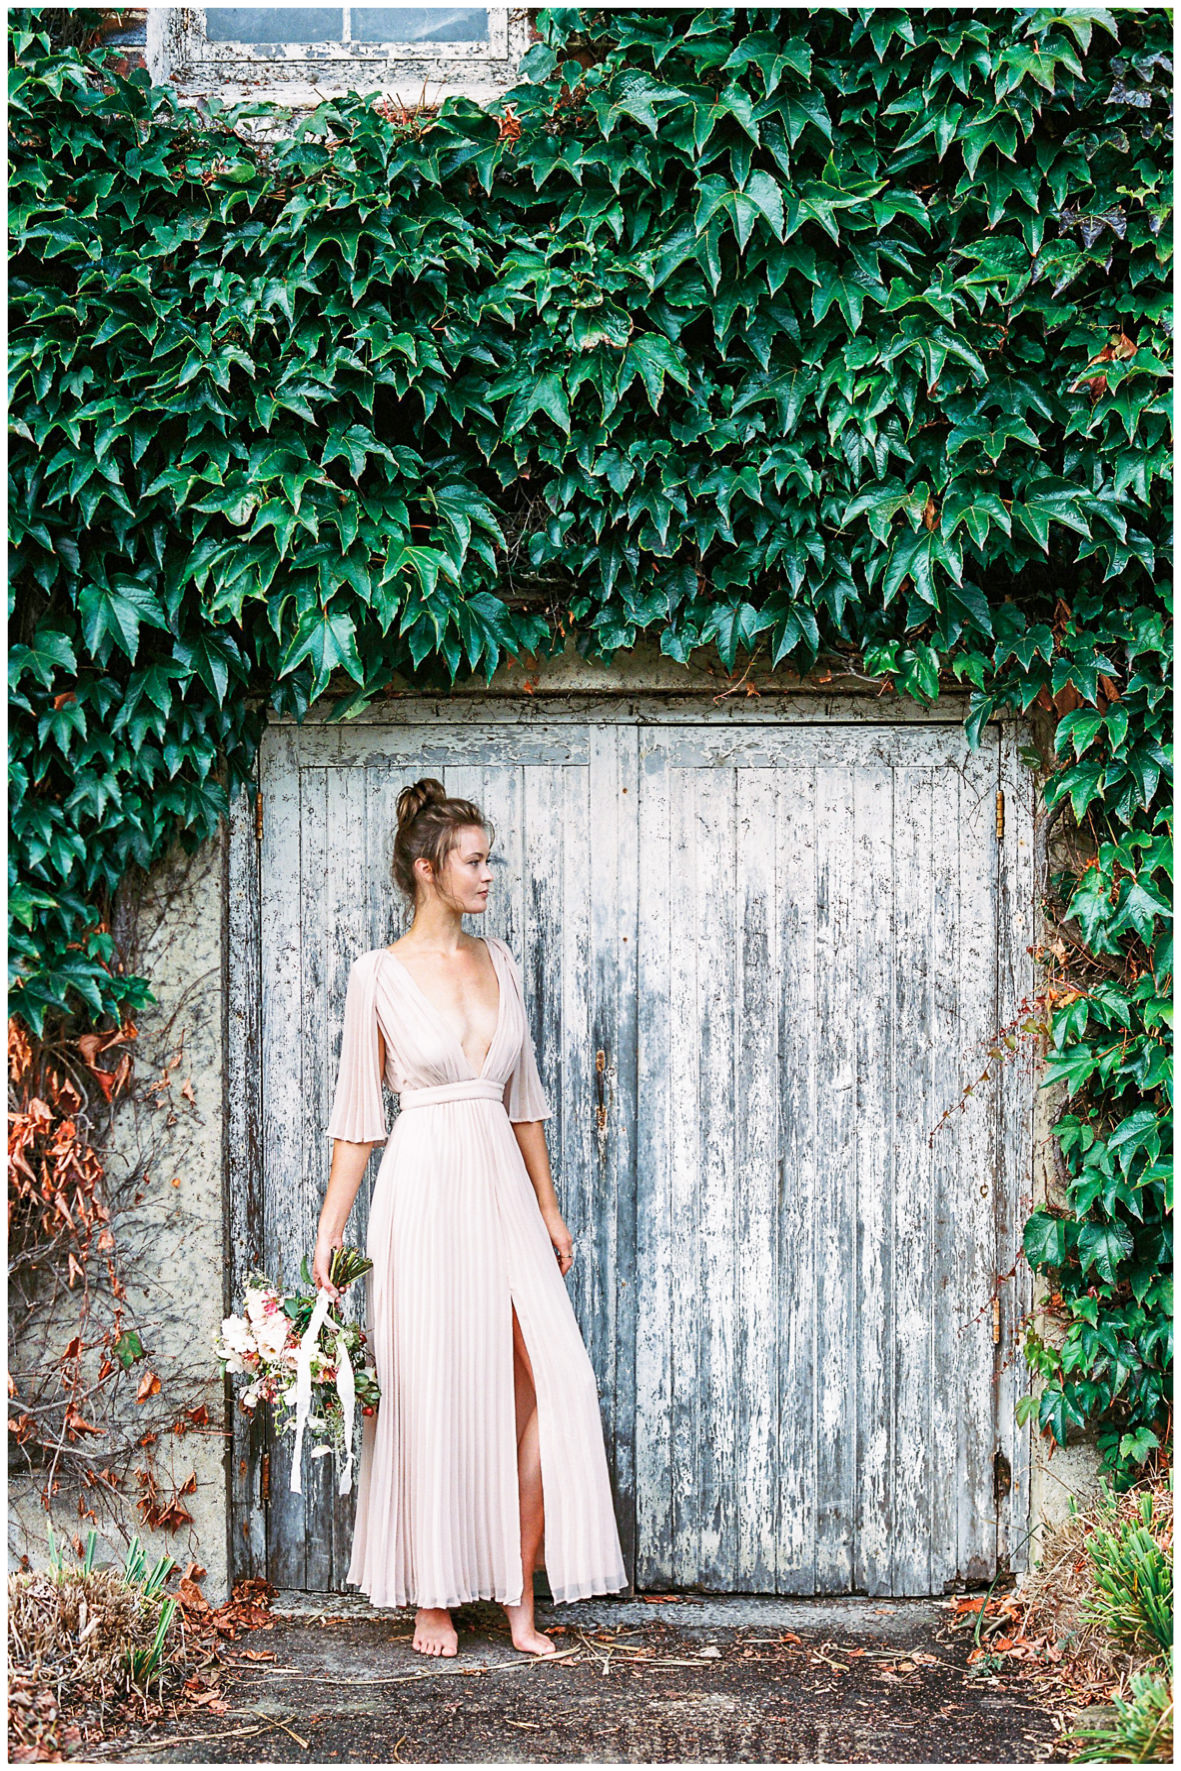 Lucy Davenport Photography, Once Wed, Home Creations, The Wedding Stylist, Verity & Thyme, bare footed bride, coloured wedding dress, florals, bouquet,